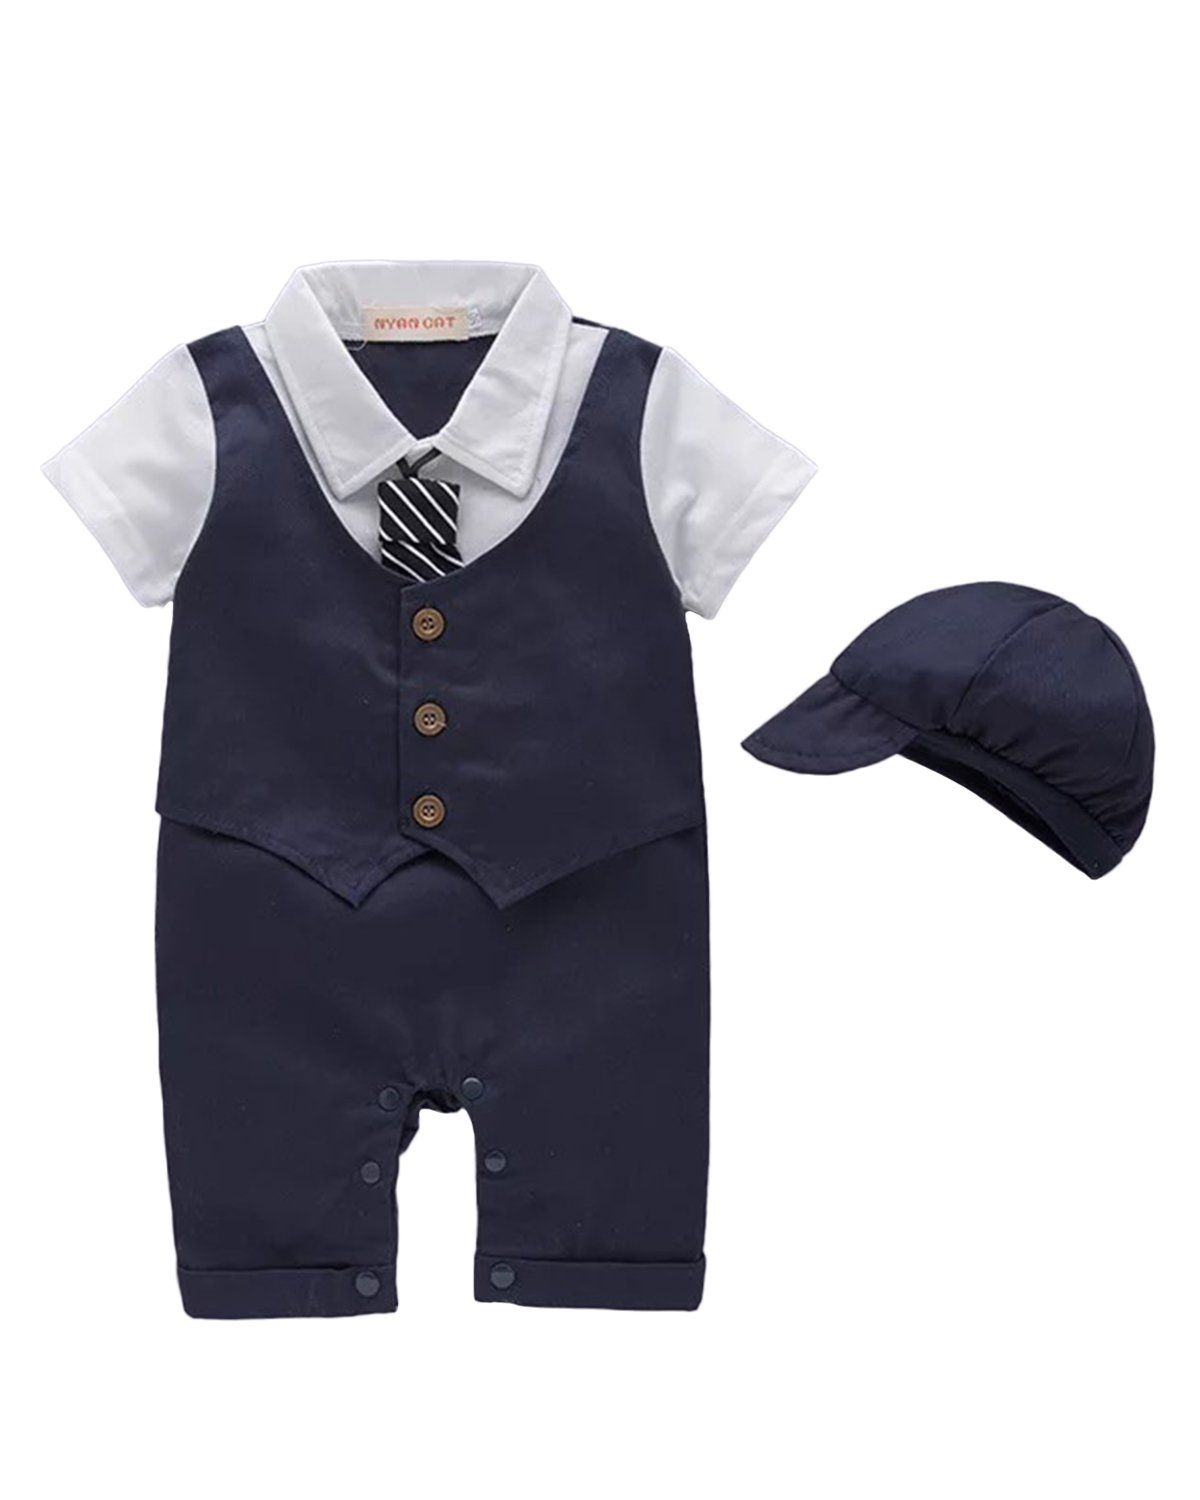 Kidsform Baby Boys Tuxedos Gentleman Suit Short Sleeve Onesie Vest Party Formal Outfit with Necktie Royal 90/18-24 Months